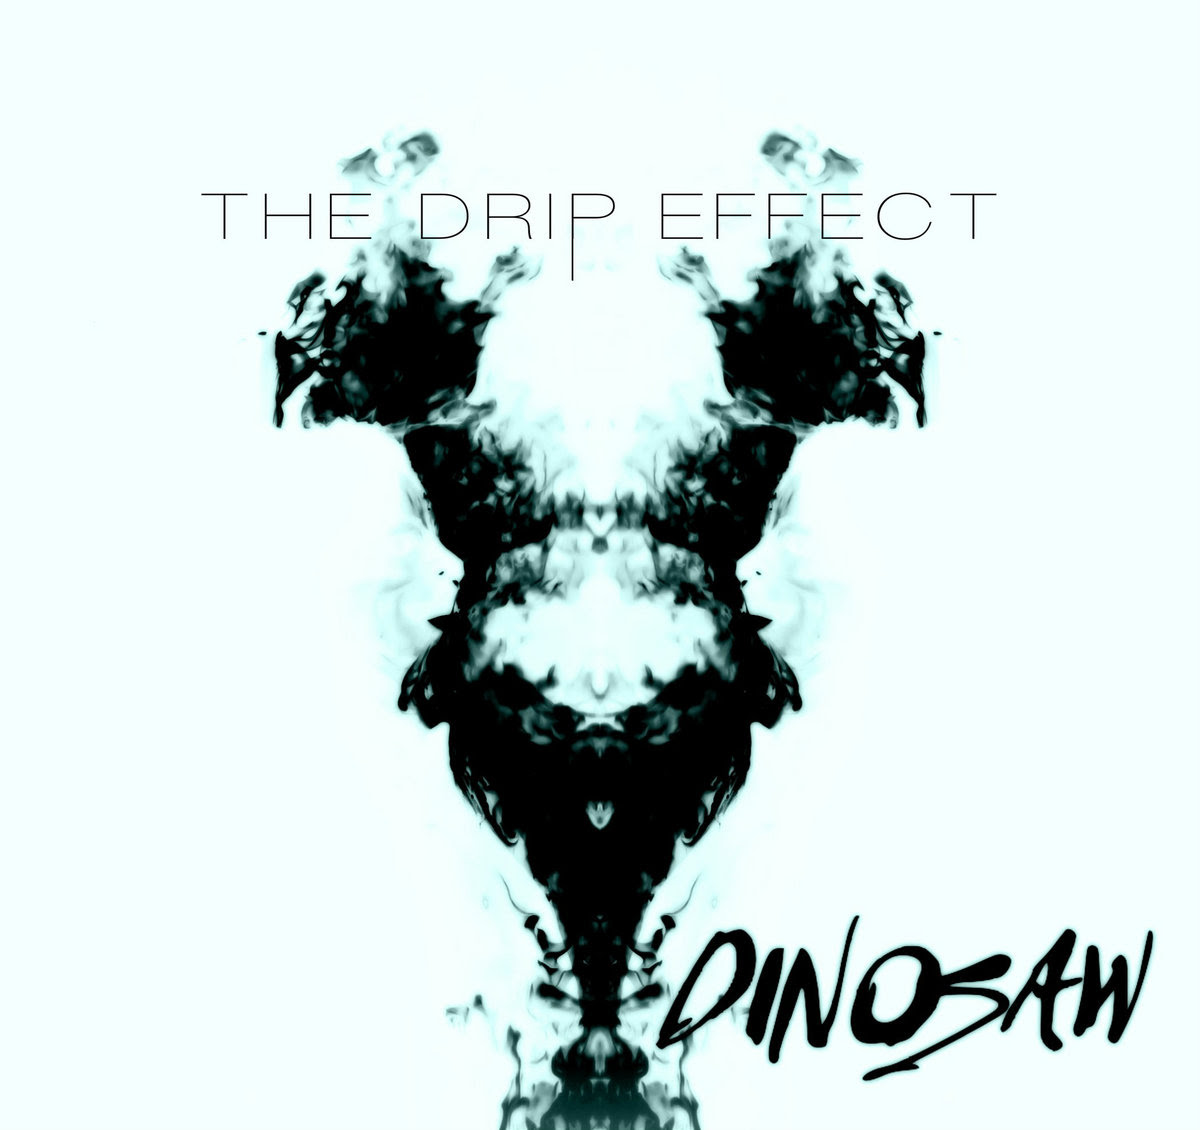 www.facebook.com/thedripeffect